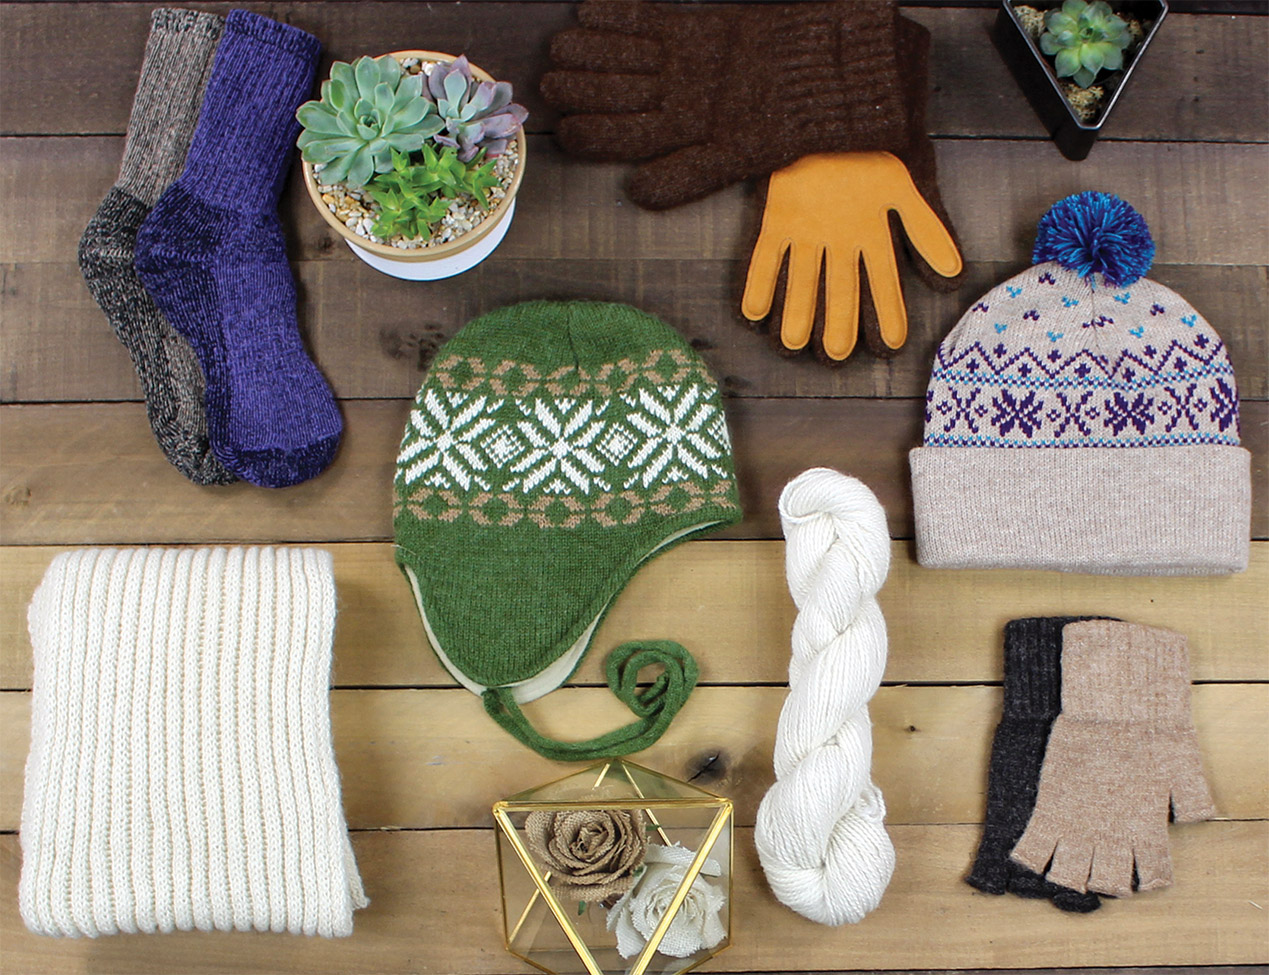 SEE WHAT WE ARE MAKING - with U.S. Grown Alpaca Fiber!